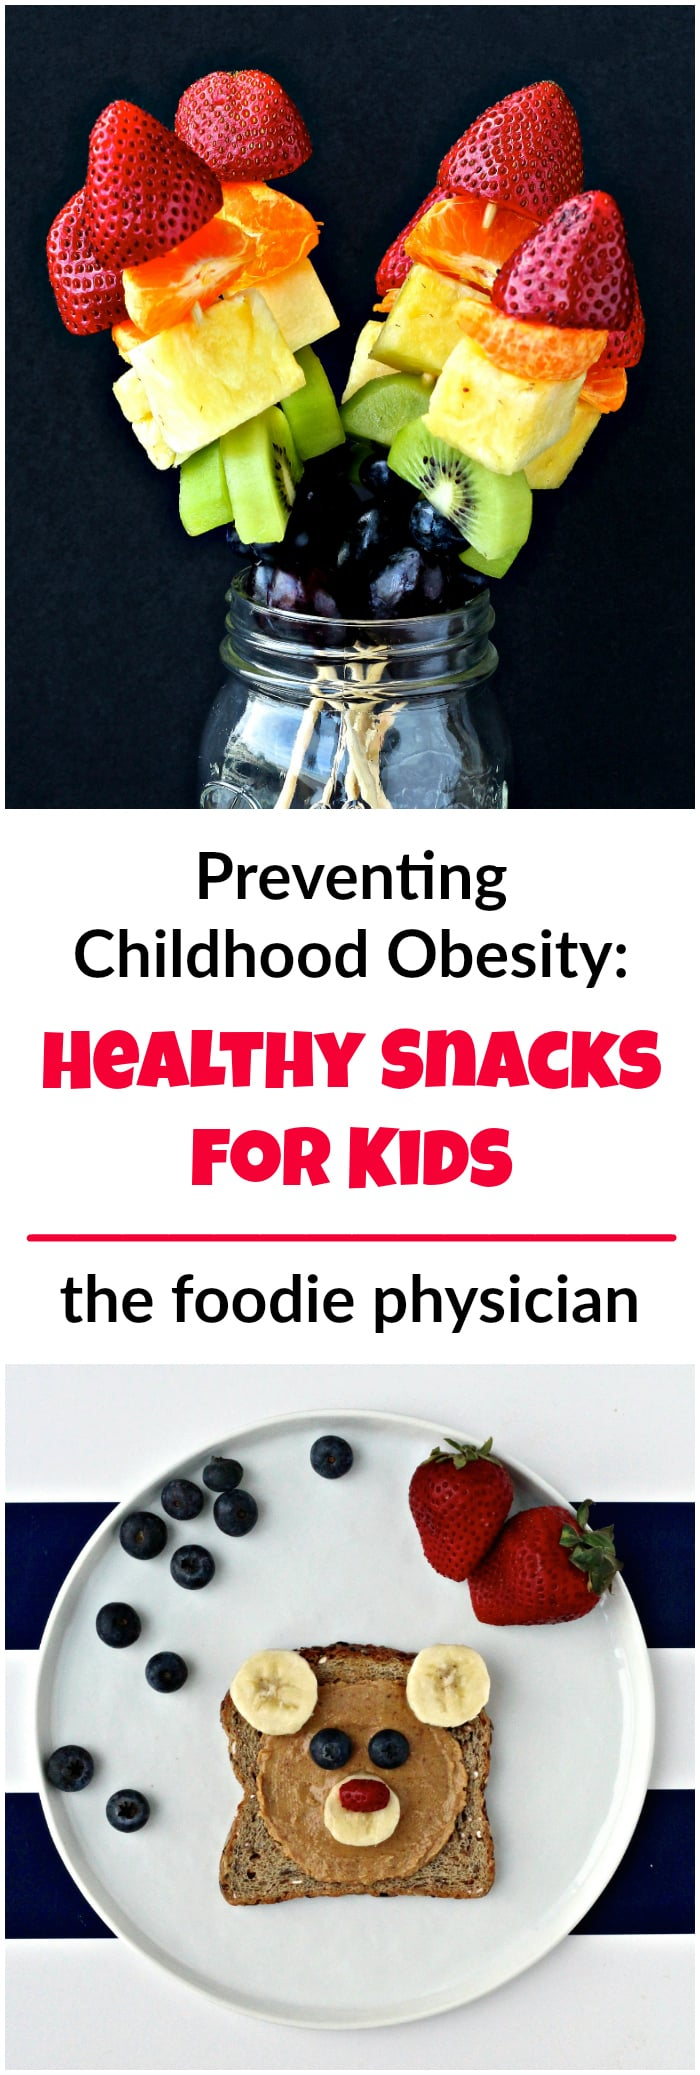 Preventing Childhood Obesity: Nutritious Snacks for Kids | @foodiephysician